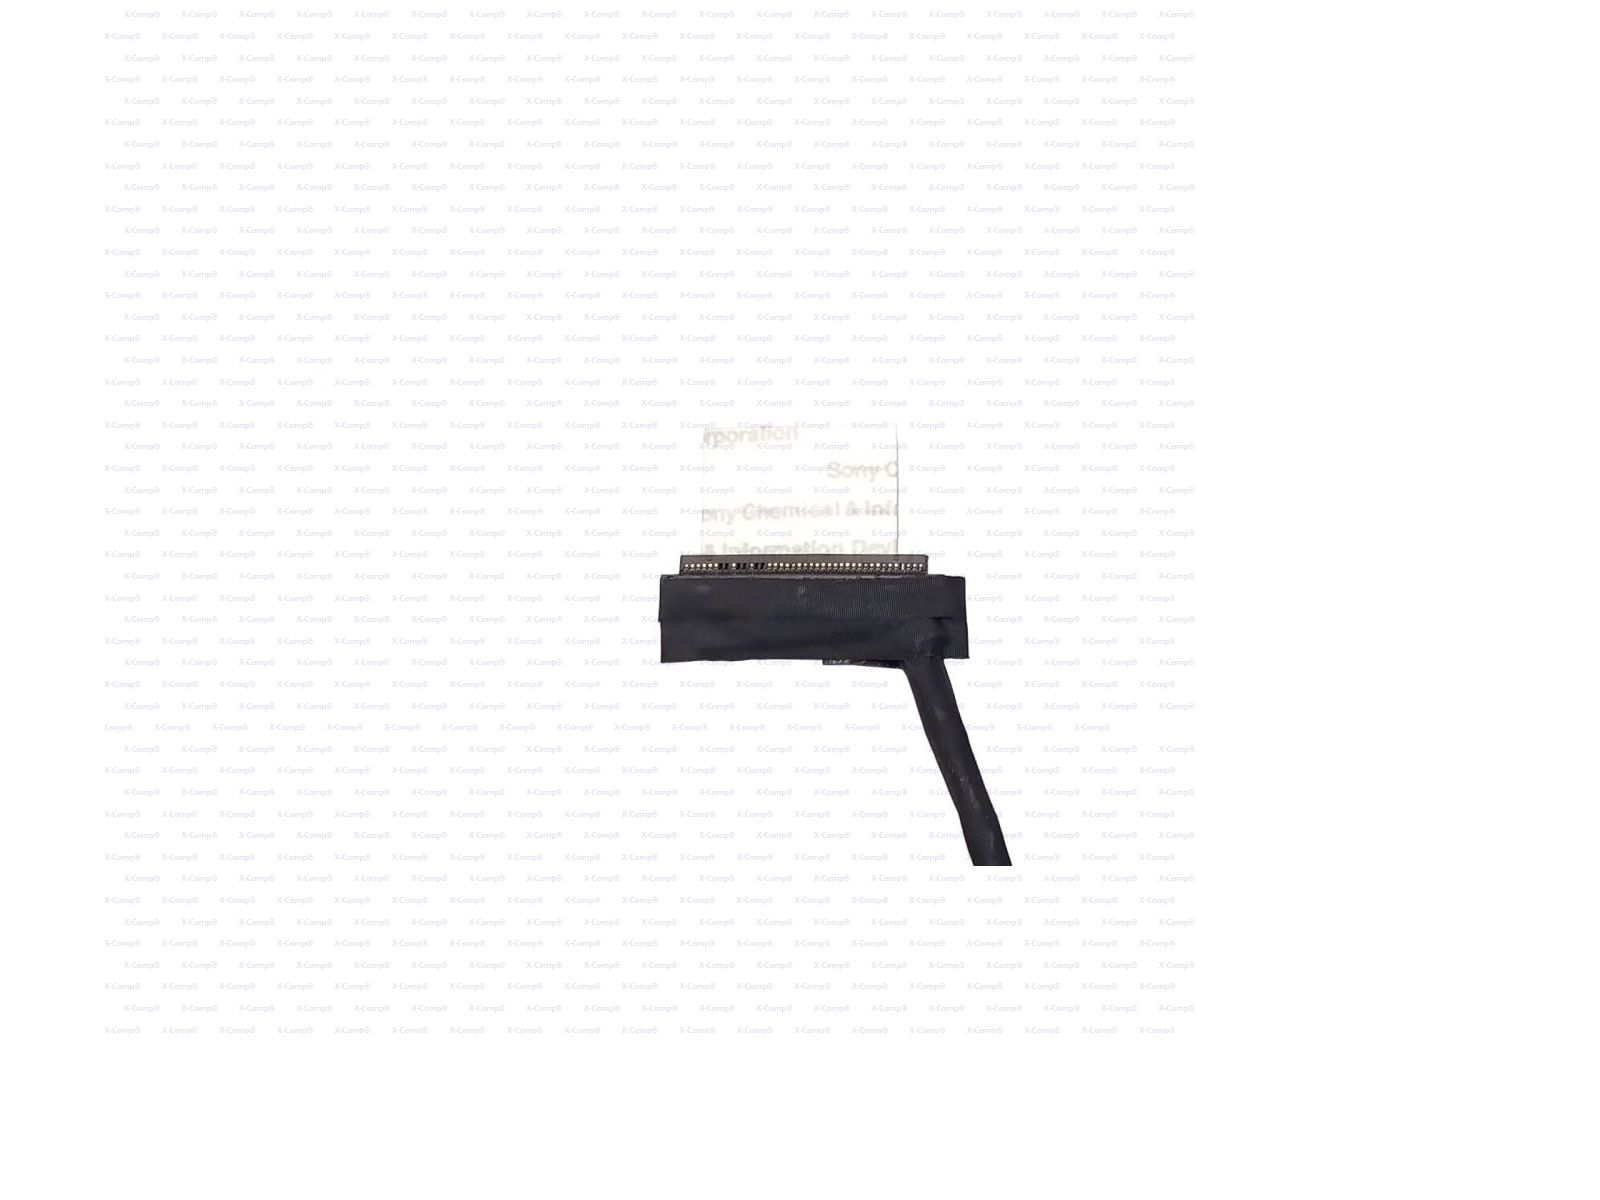 Display LCD Video Kabel 50.4VM03.002 für Acer Aspire V5-431-10072G50Mabb